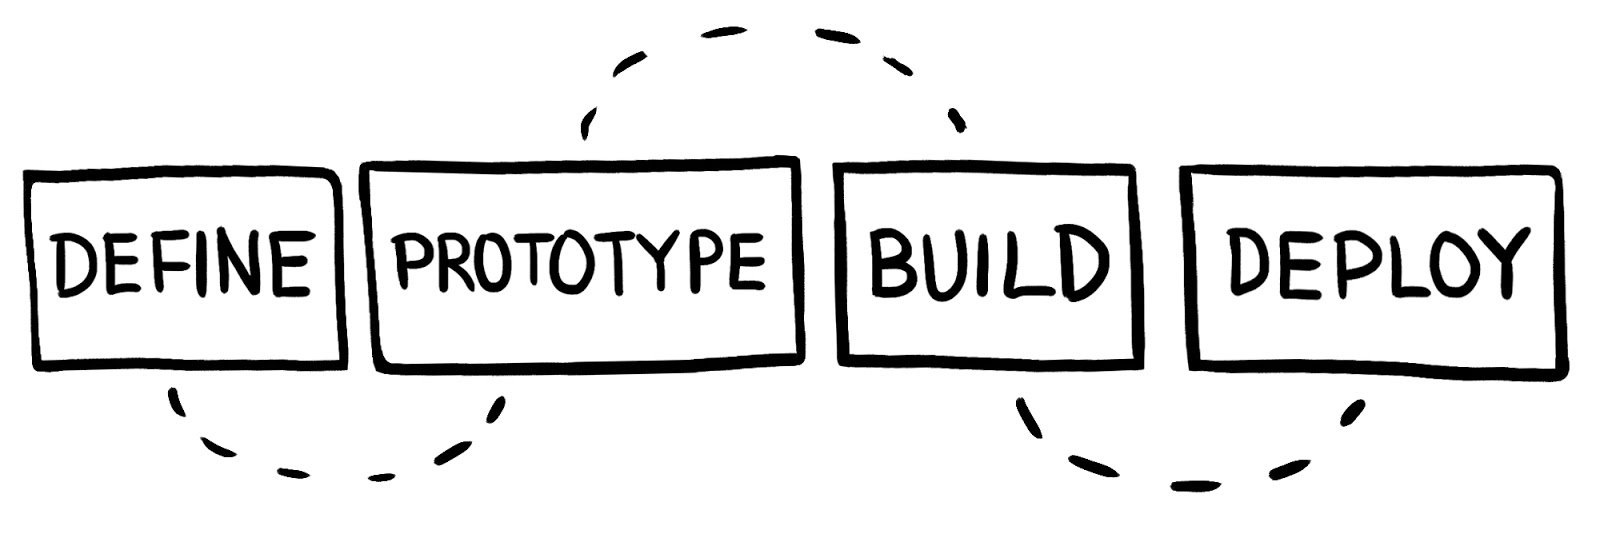 Four steps of the design process: Define > Prototype > Build > Deploy